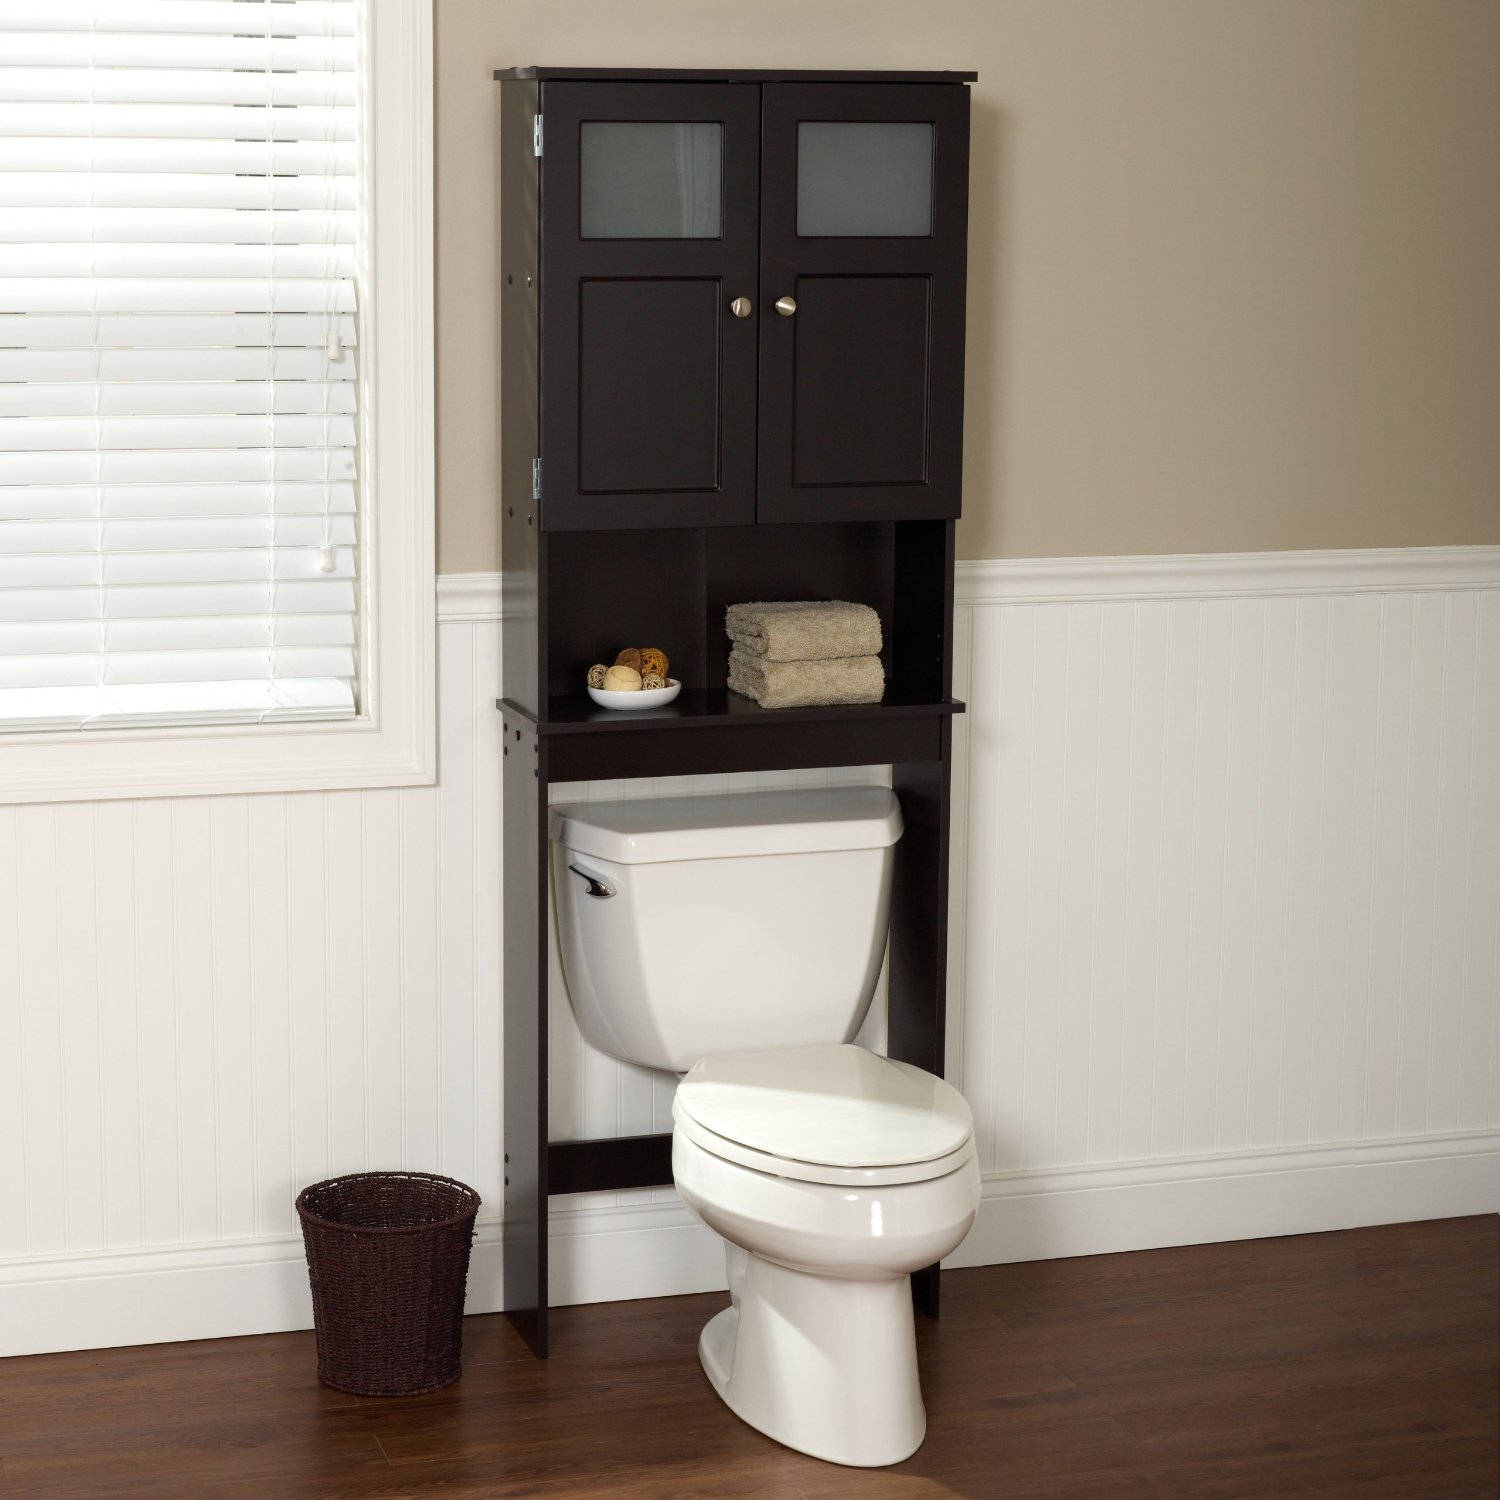 bathroom shelves over toilet target | My Web Value